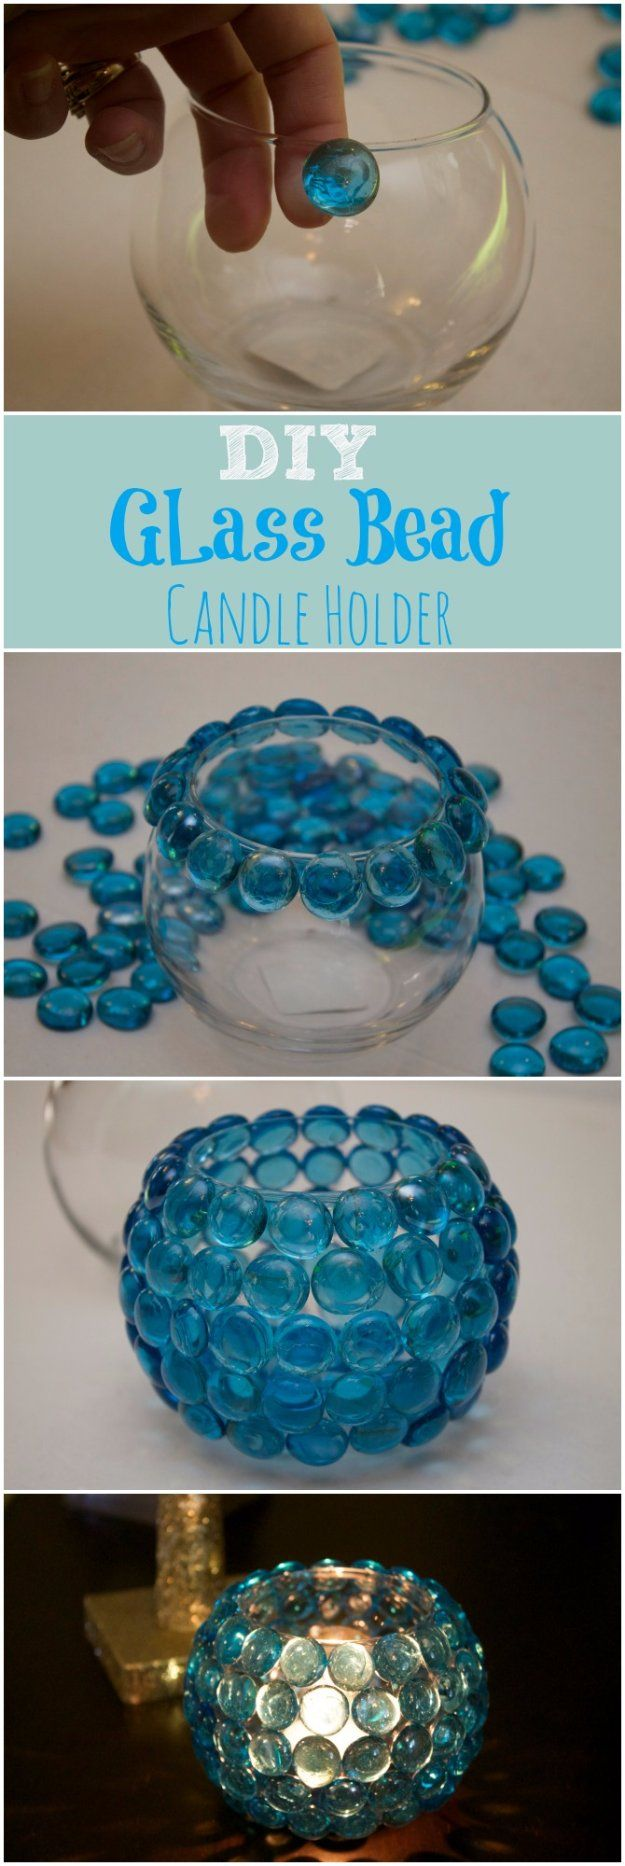 Easy Crafts To Make and Sell - DIY Glass Bead Vase - Cool Homemade Craft Projects You Can Sell On Etsy, at Craft Fairs, Online and in Stores. Quick and Cheap DIY Ideas that Adults and Even Teens Can Make http://diyjoy.com/easy-crafts-to-make-and-sell